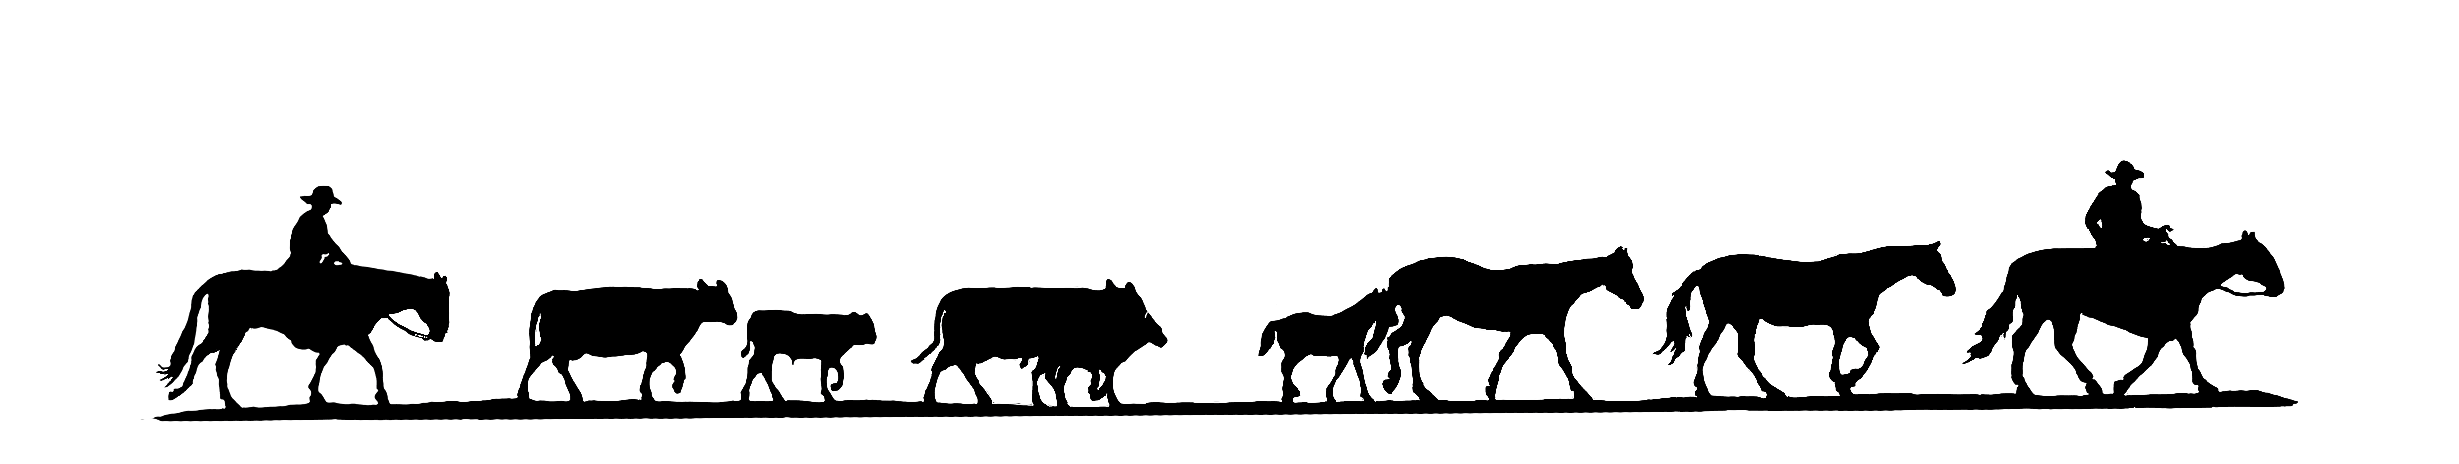 Longhorn clipart cattle roundup. Drive silhouette at getdrawings